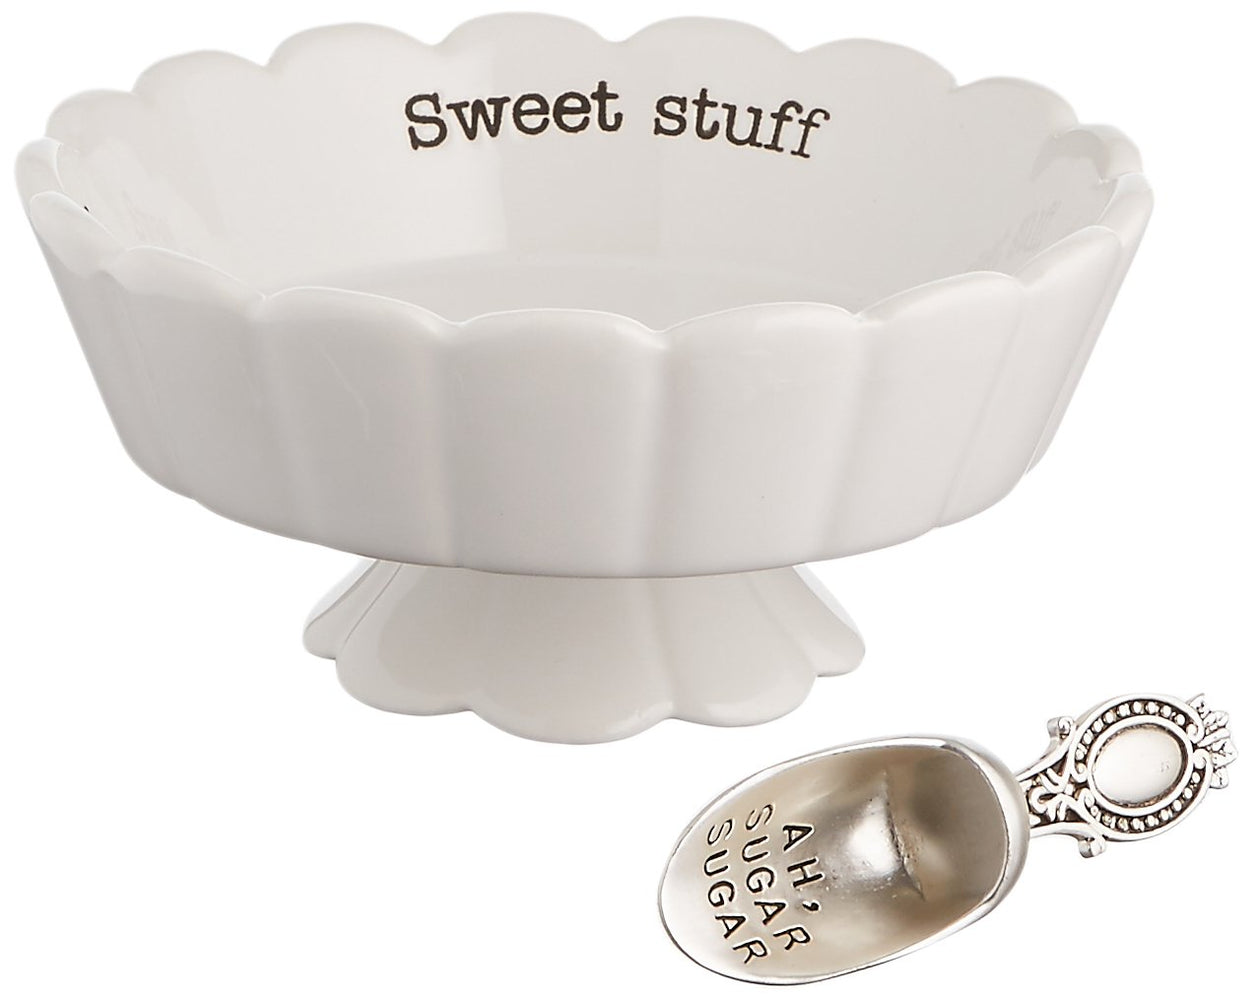 Mud Pie 4881012S Candy Dish Set Sweet Stuff, White